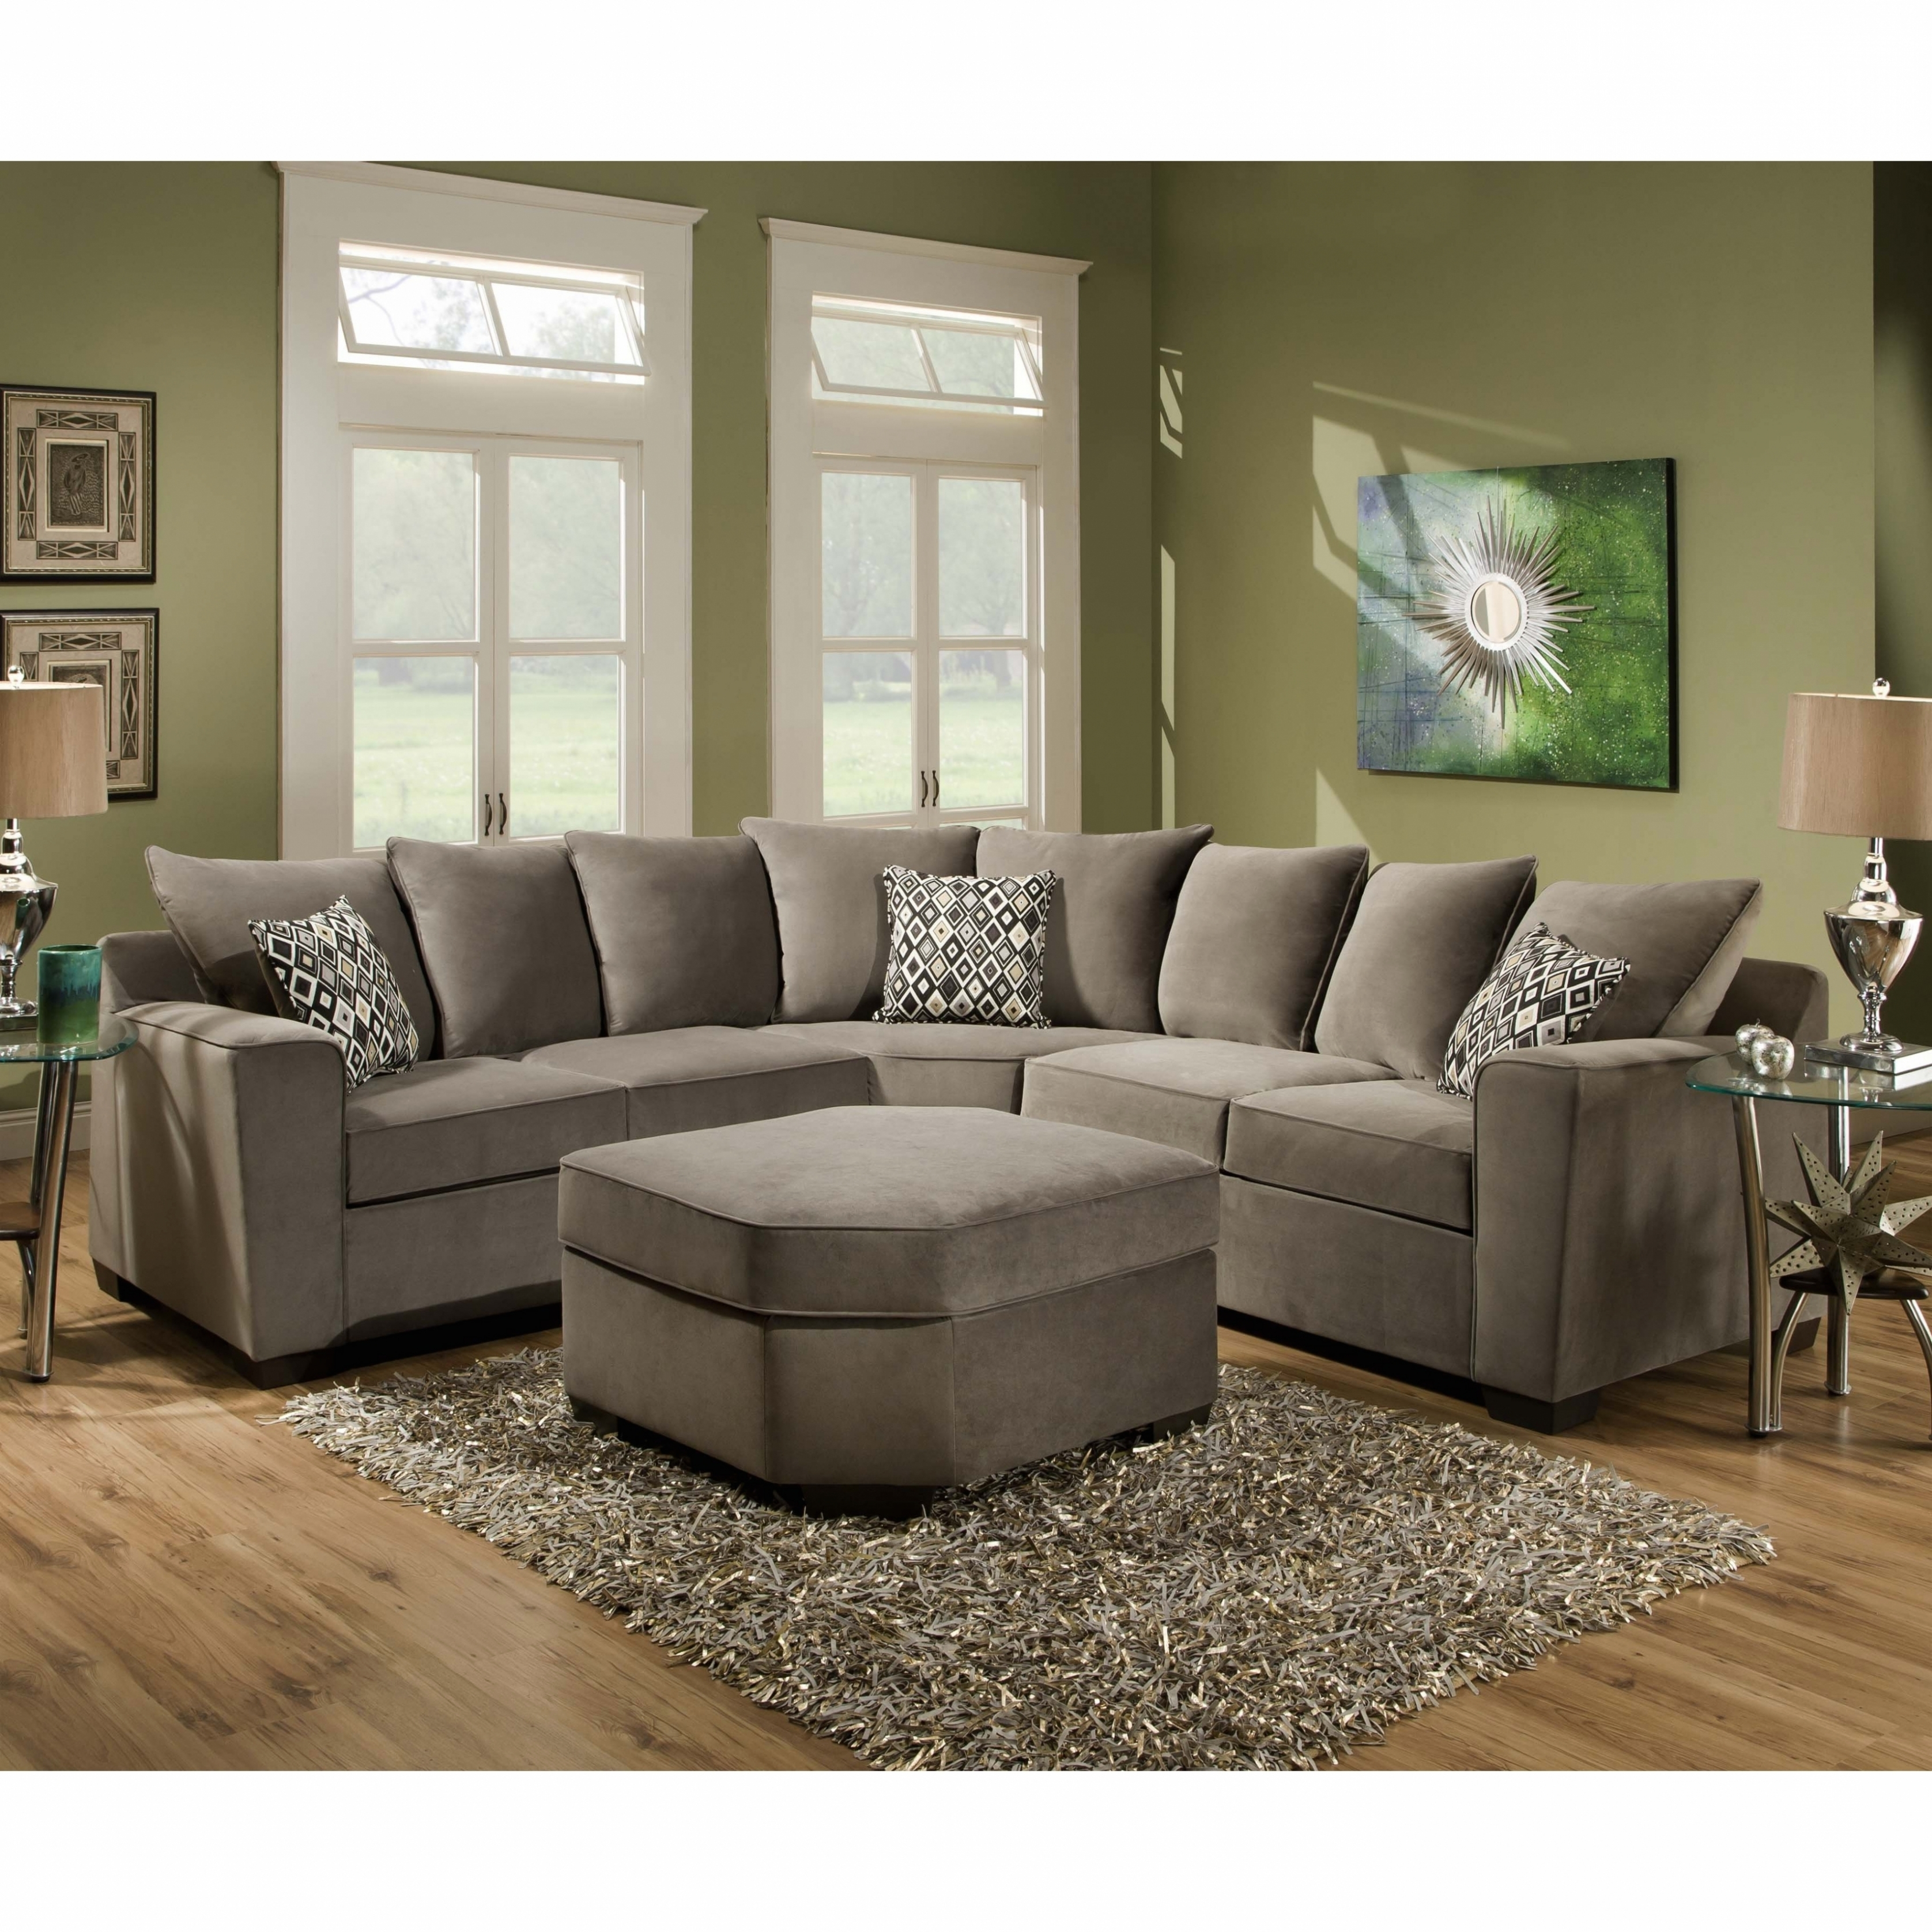 Popular Sofa: Havertys Sectional Sofas Nrhcares Within Lovely Havertys Within Havertys Sectional Sofas (View 17 of 20)